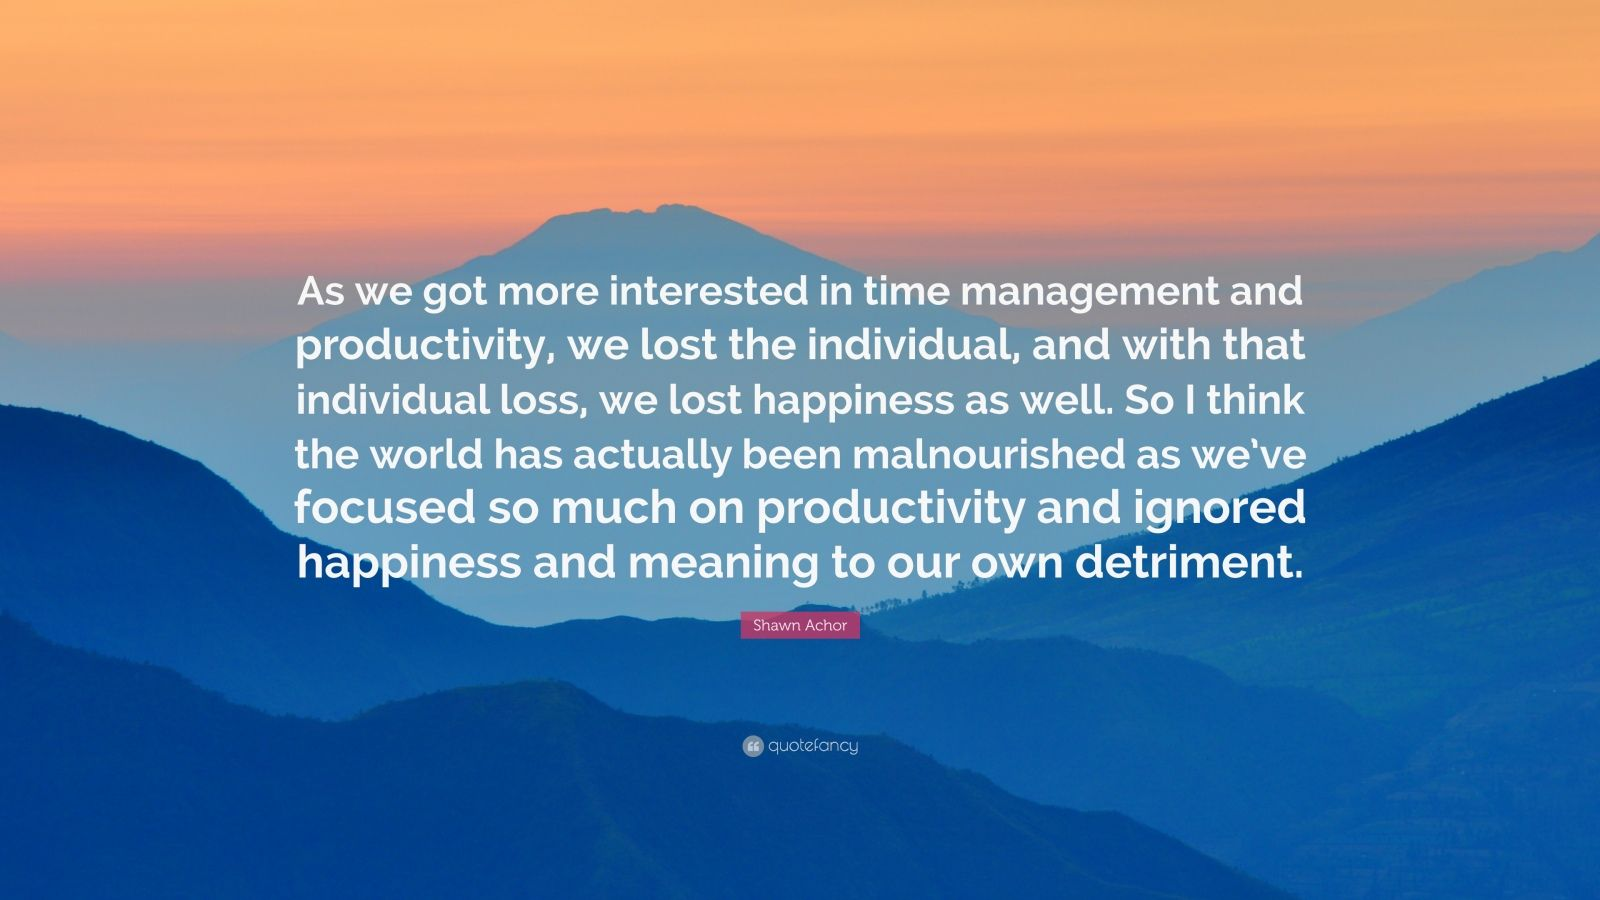 "Shawn Achor Quote: ""As we got more interested in time management and productivity, we lost the individual, and with that individual loss, we lost happiness as well. So I think the world has actually been malnourished as we've focused so much on productivity and ignored happiness and meaning to our own detriment."""